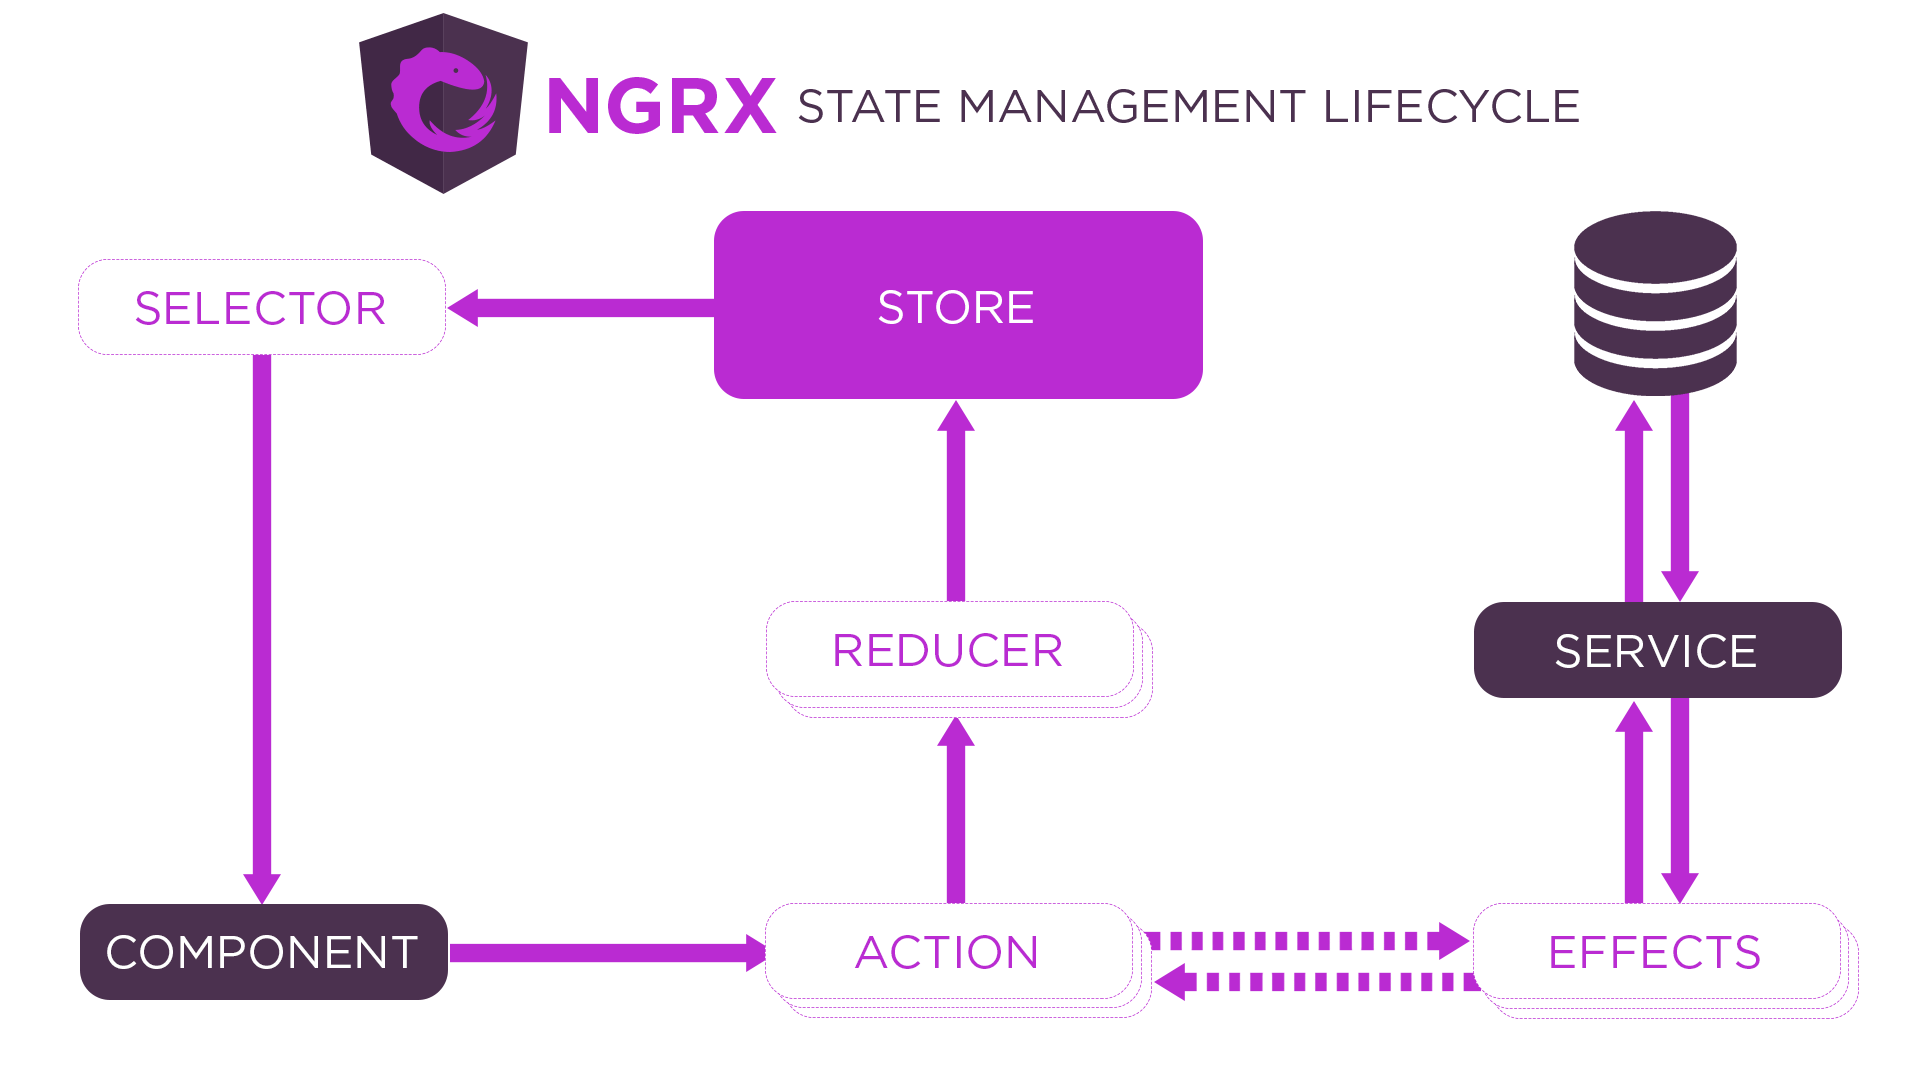 NgRx State Management Lifecycle Diagram